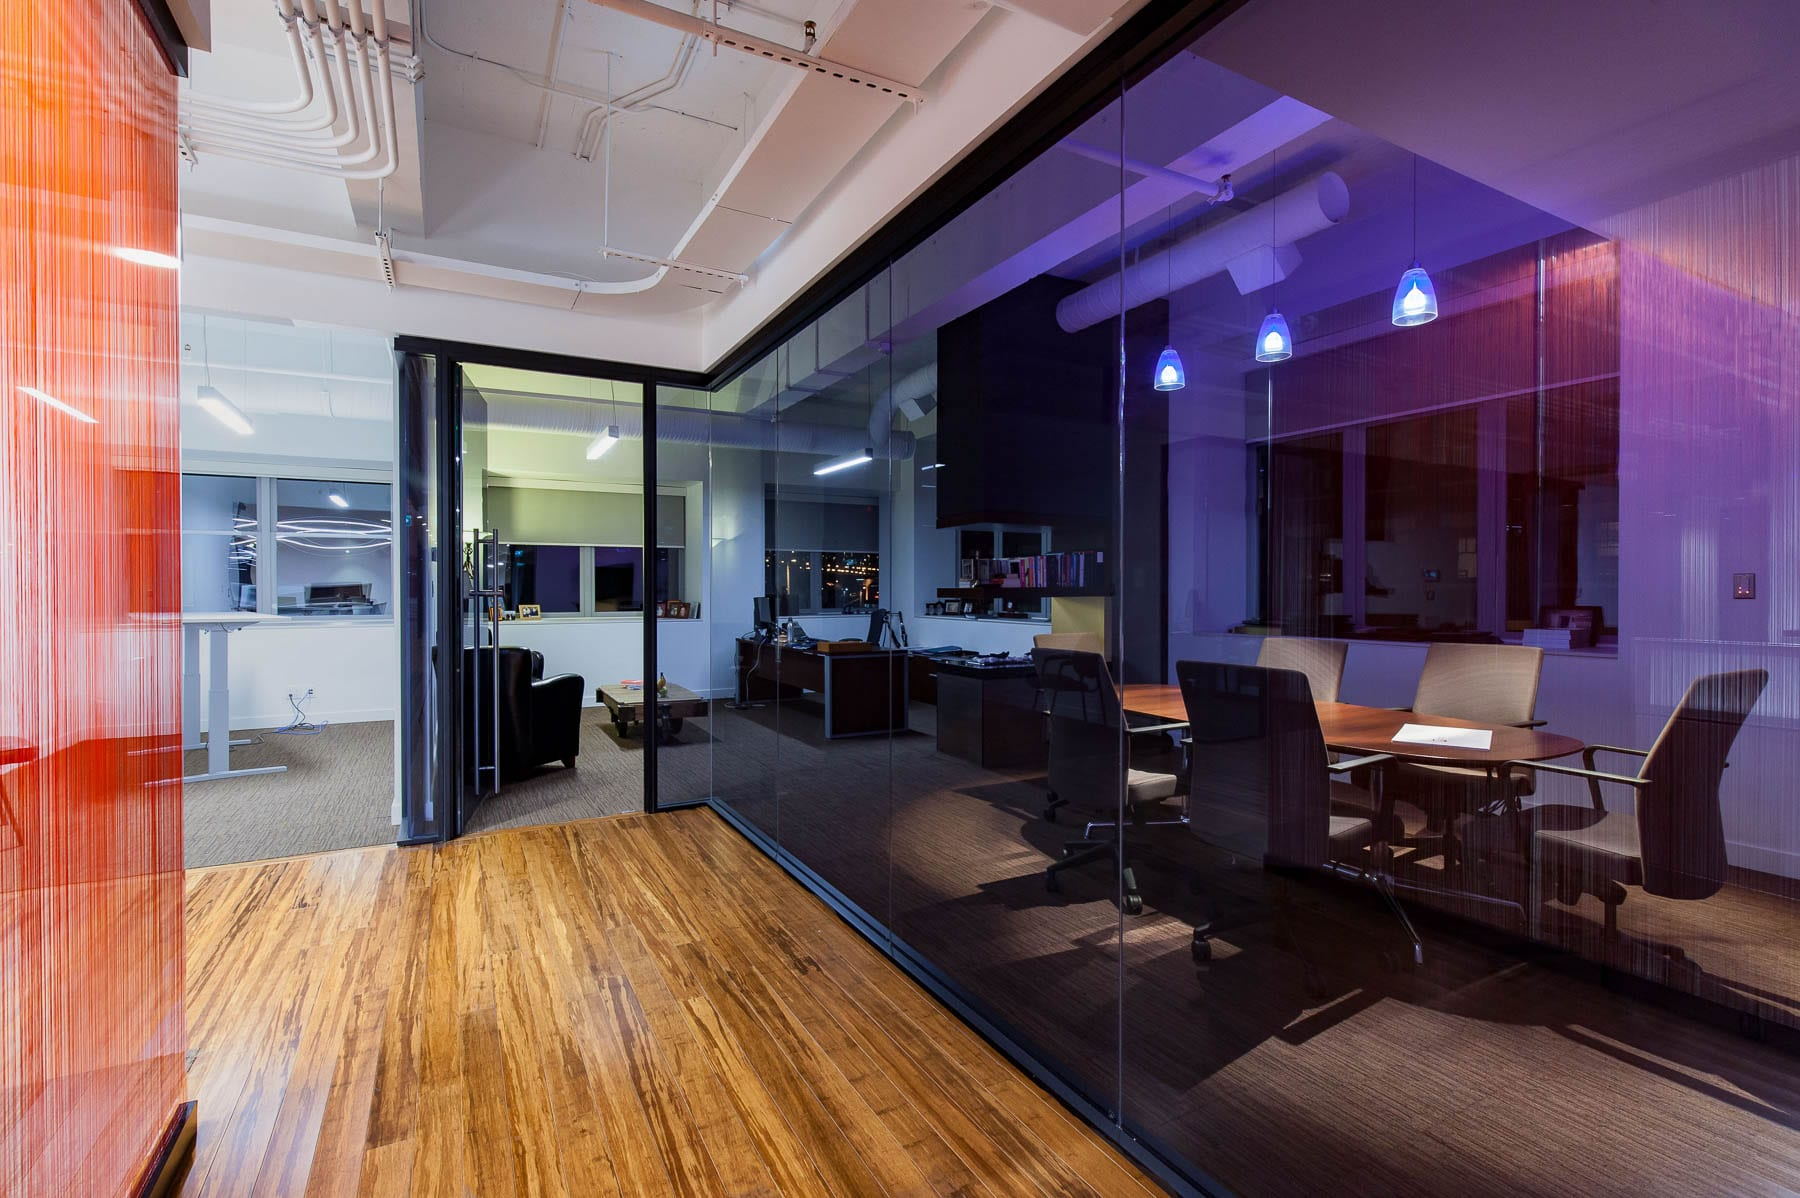 Contemporary Office TI at MIABC with glazed modular walls used for the office fronts